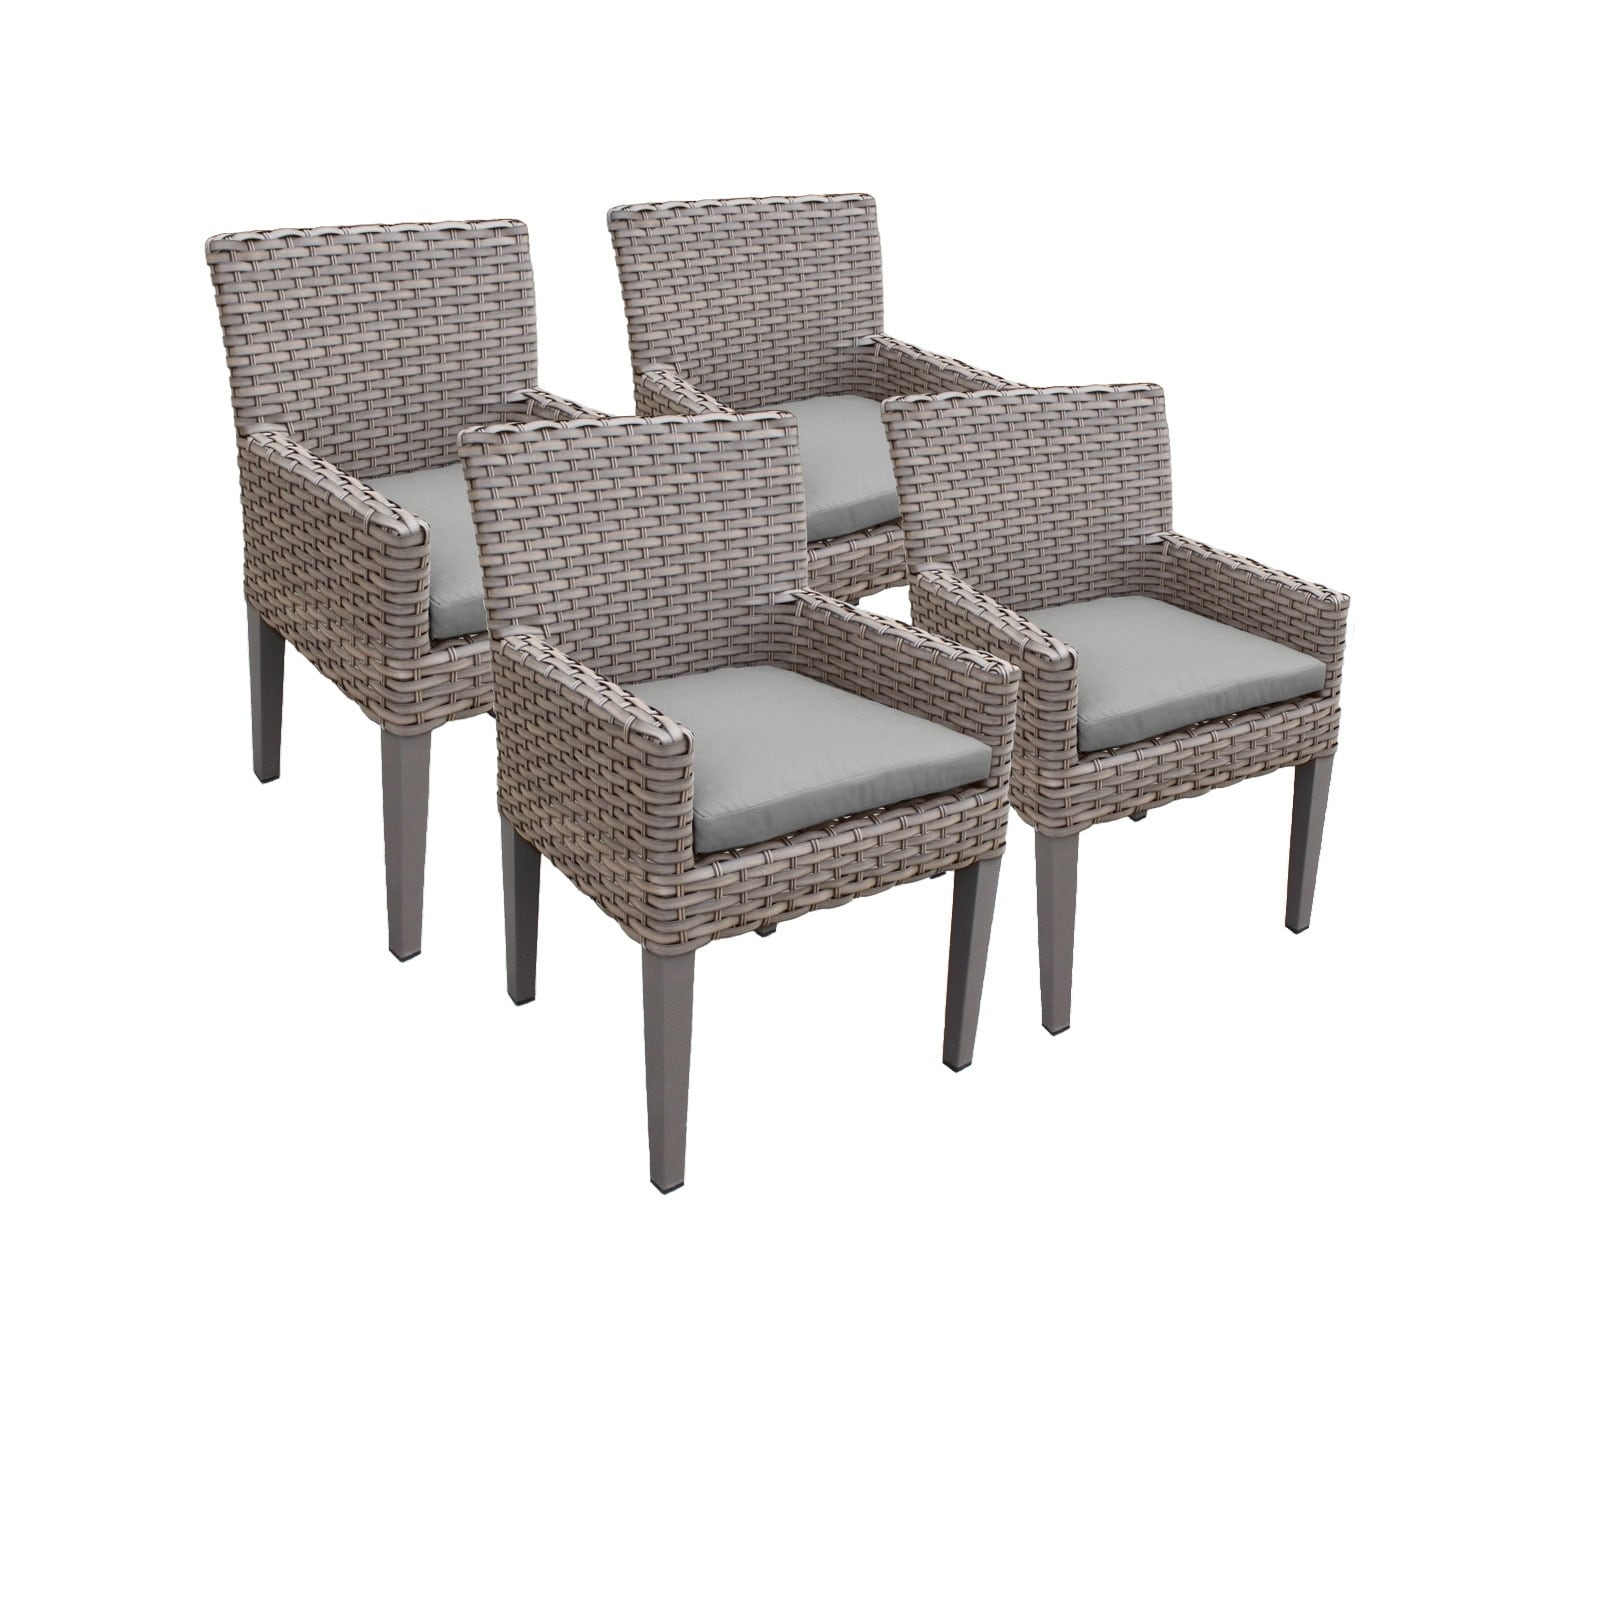 Outdoor Wicker Dining Chairs Tk Classics Monterey Aluminum Resin Wicker Dining Chairs With Arms Set Of 4